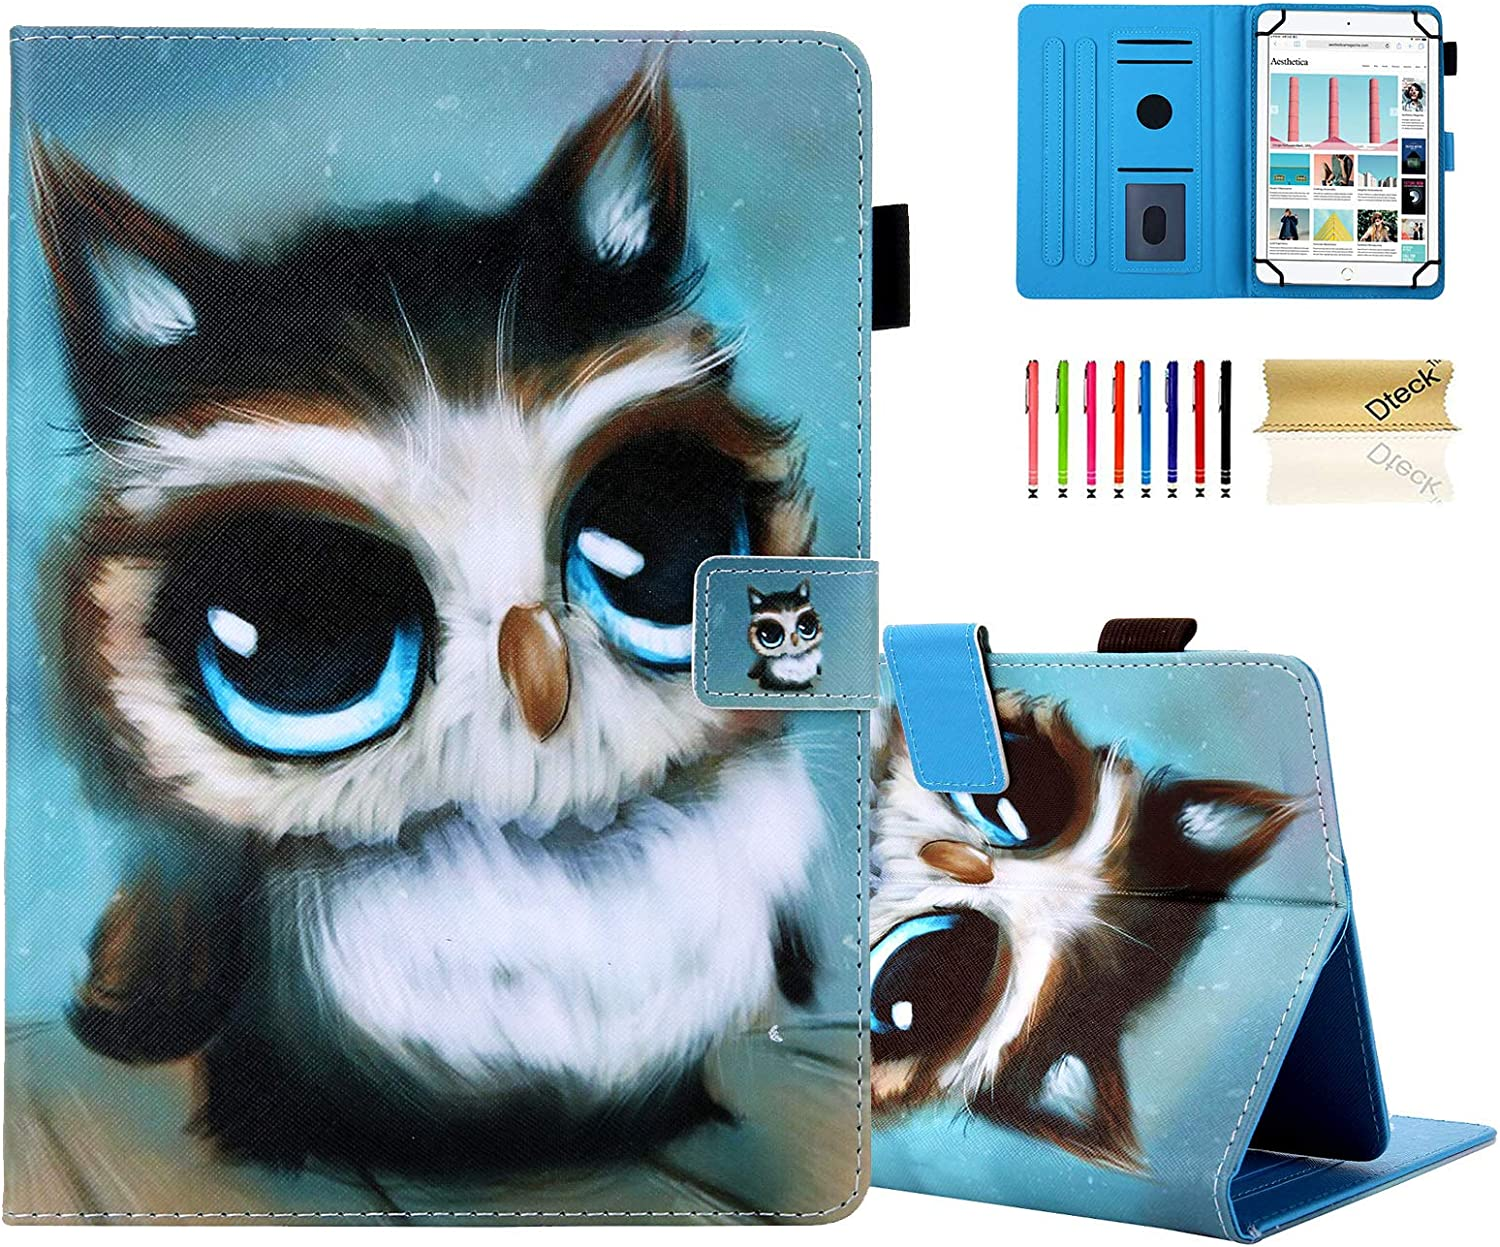 8.0-8.4 Inch Display Universal Case - Dteck Slim Leather Wallet Cute Cover for HD 8/ Samsung Galaxy Tab/Lenovo Tab/Dragon Touch/LG G Pad/Huawei/Onn/Android Tablet 8 8.3 8.4 Inch (Lovely Owl)